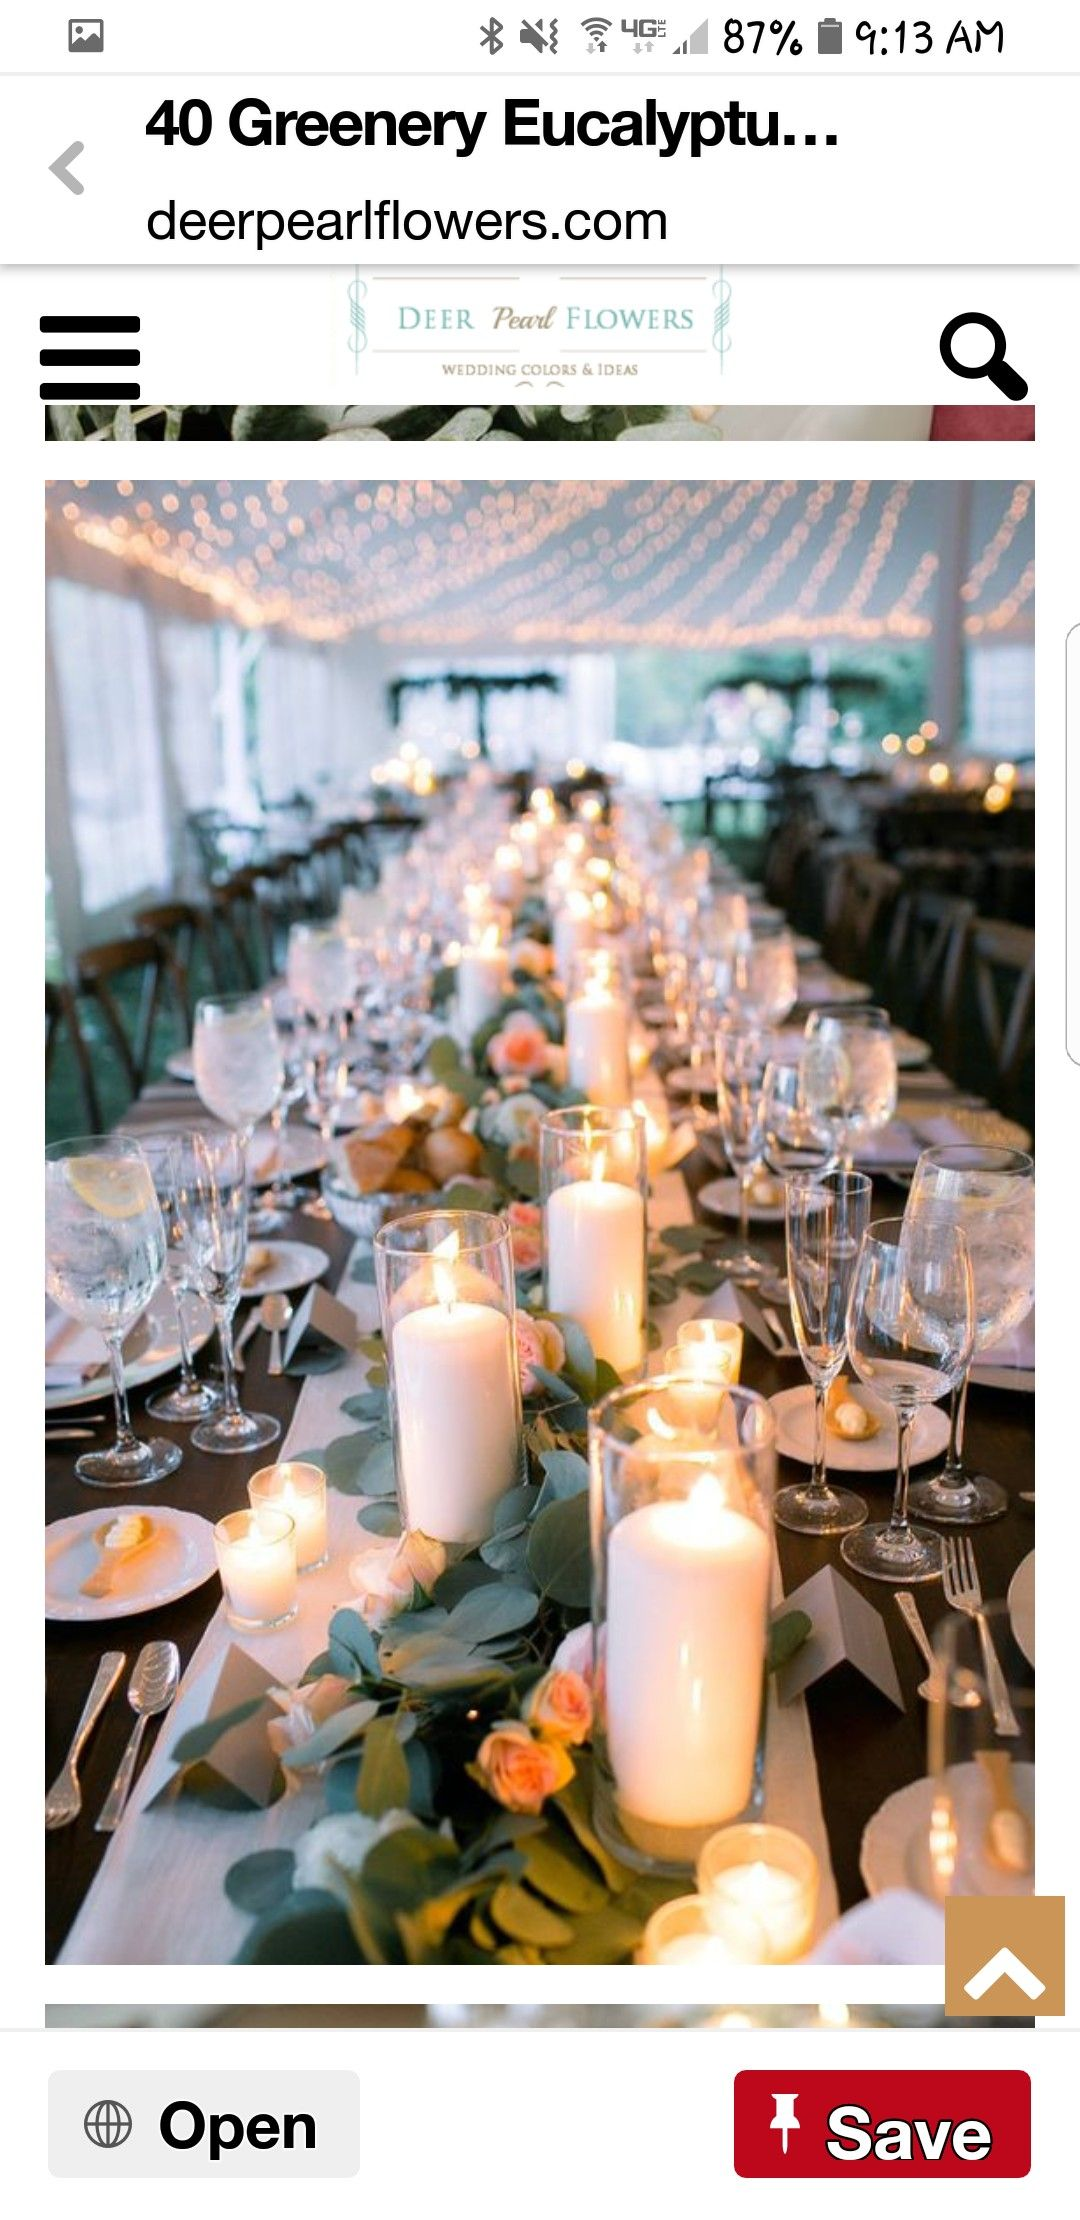 Wedding decorations wedding reception ideas november 2018 Pin by Sarah Symington on Wedding ideas in   Pinterest